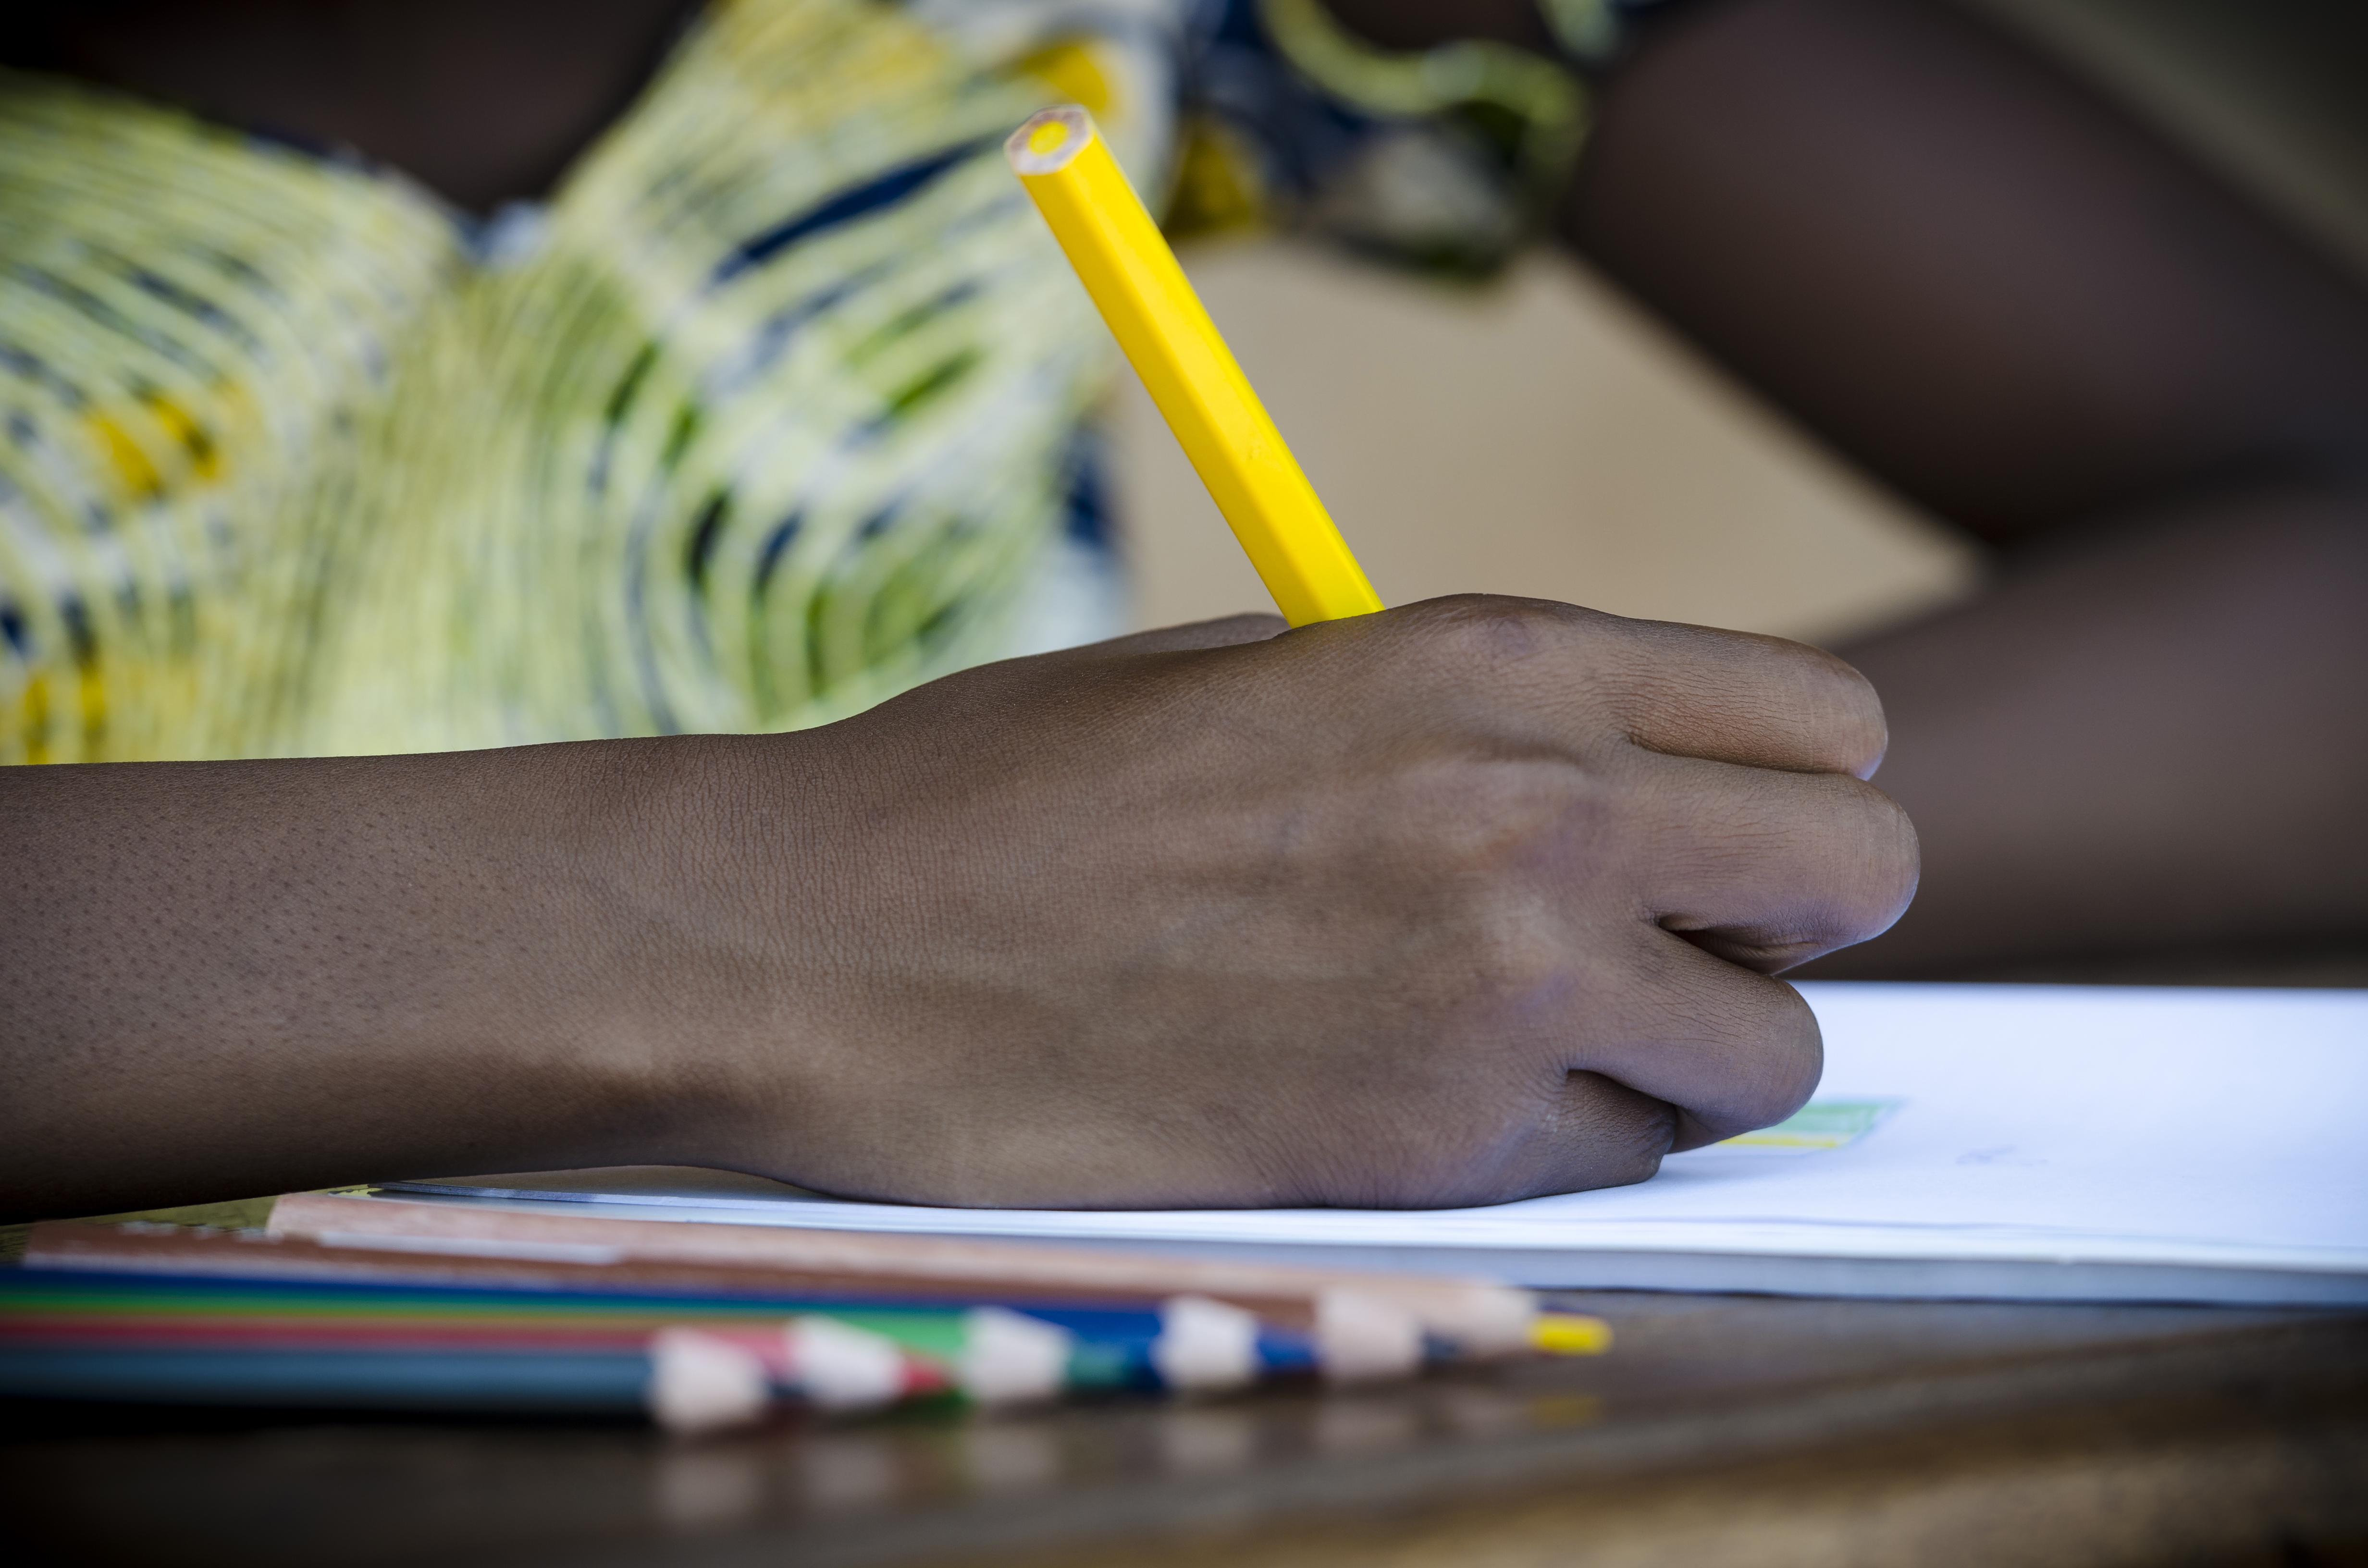 Malawi: Challenging refusal of admission to school